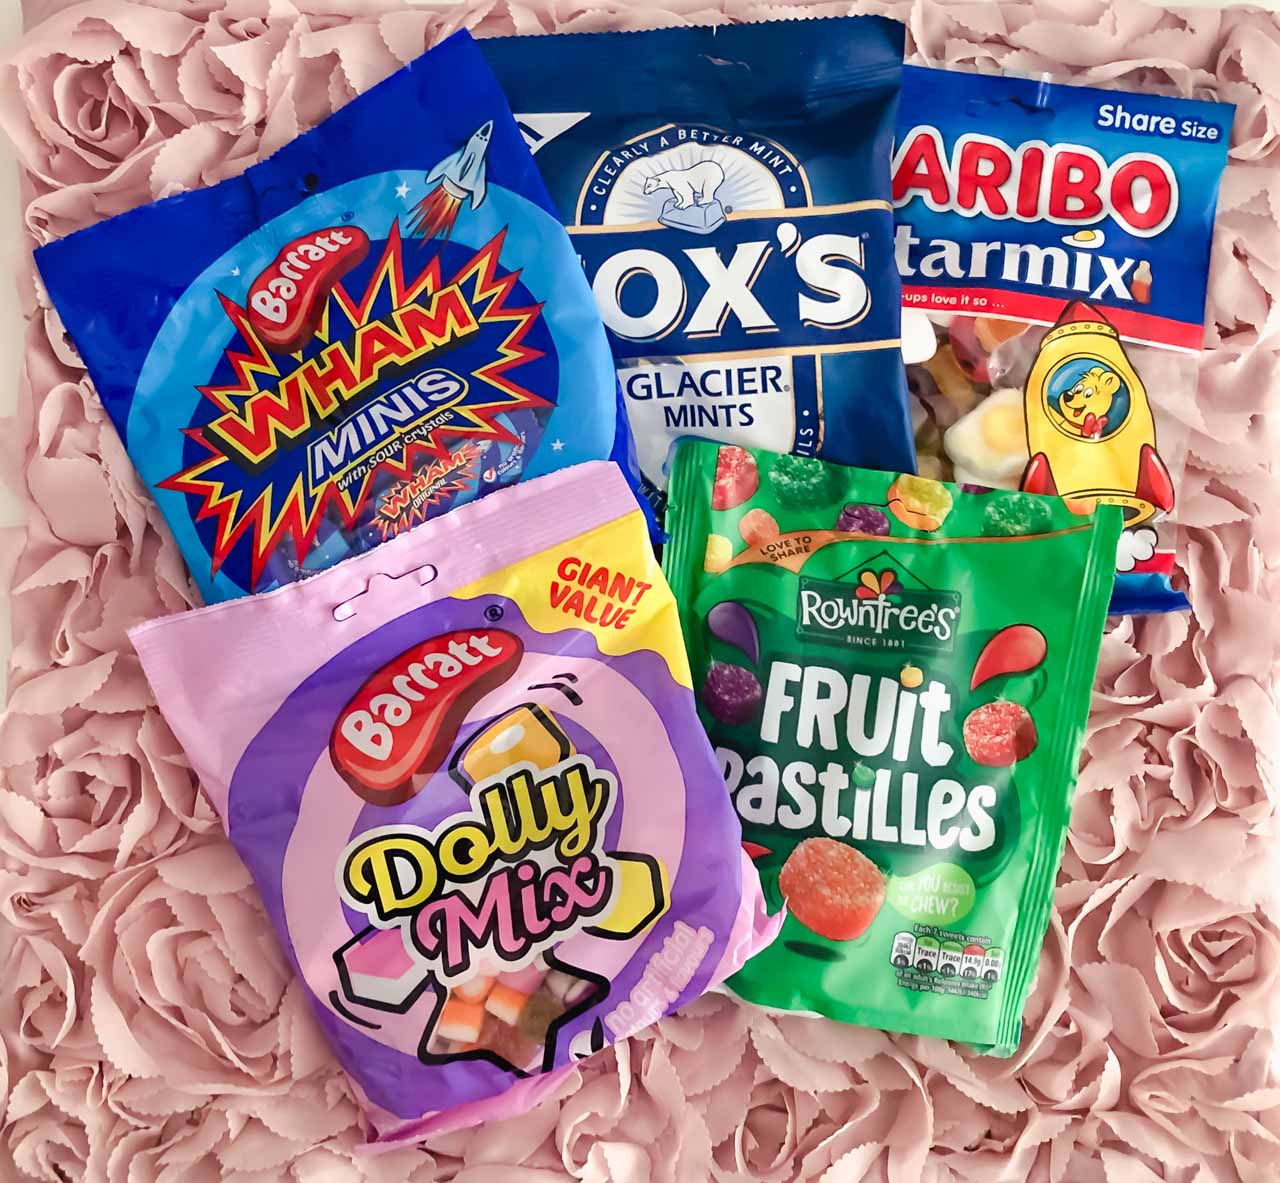 A pack of Wham minis, Fox's Glacier mints, Haribo Starmix, Dolly Mix and Fruit Pastilles against a pink background